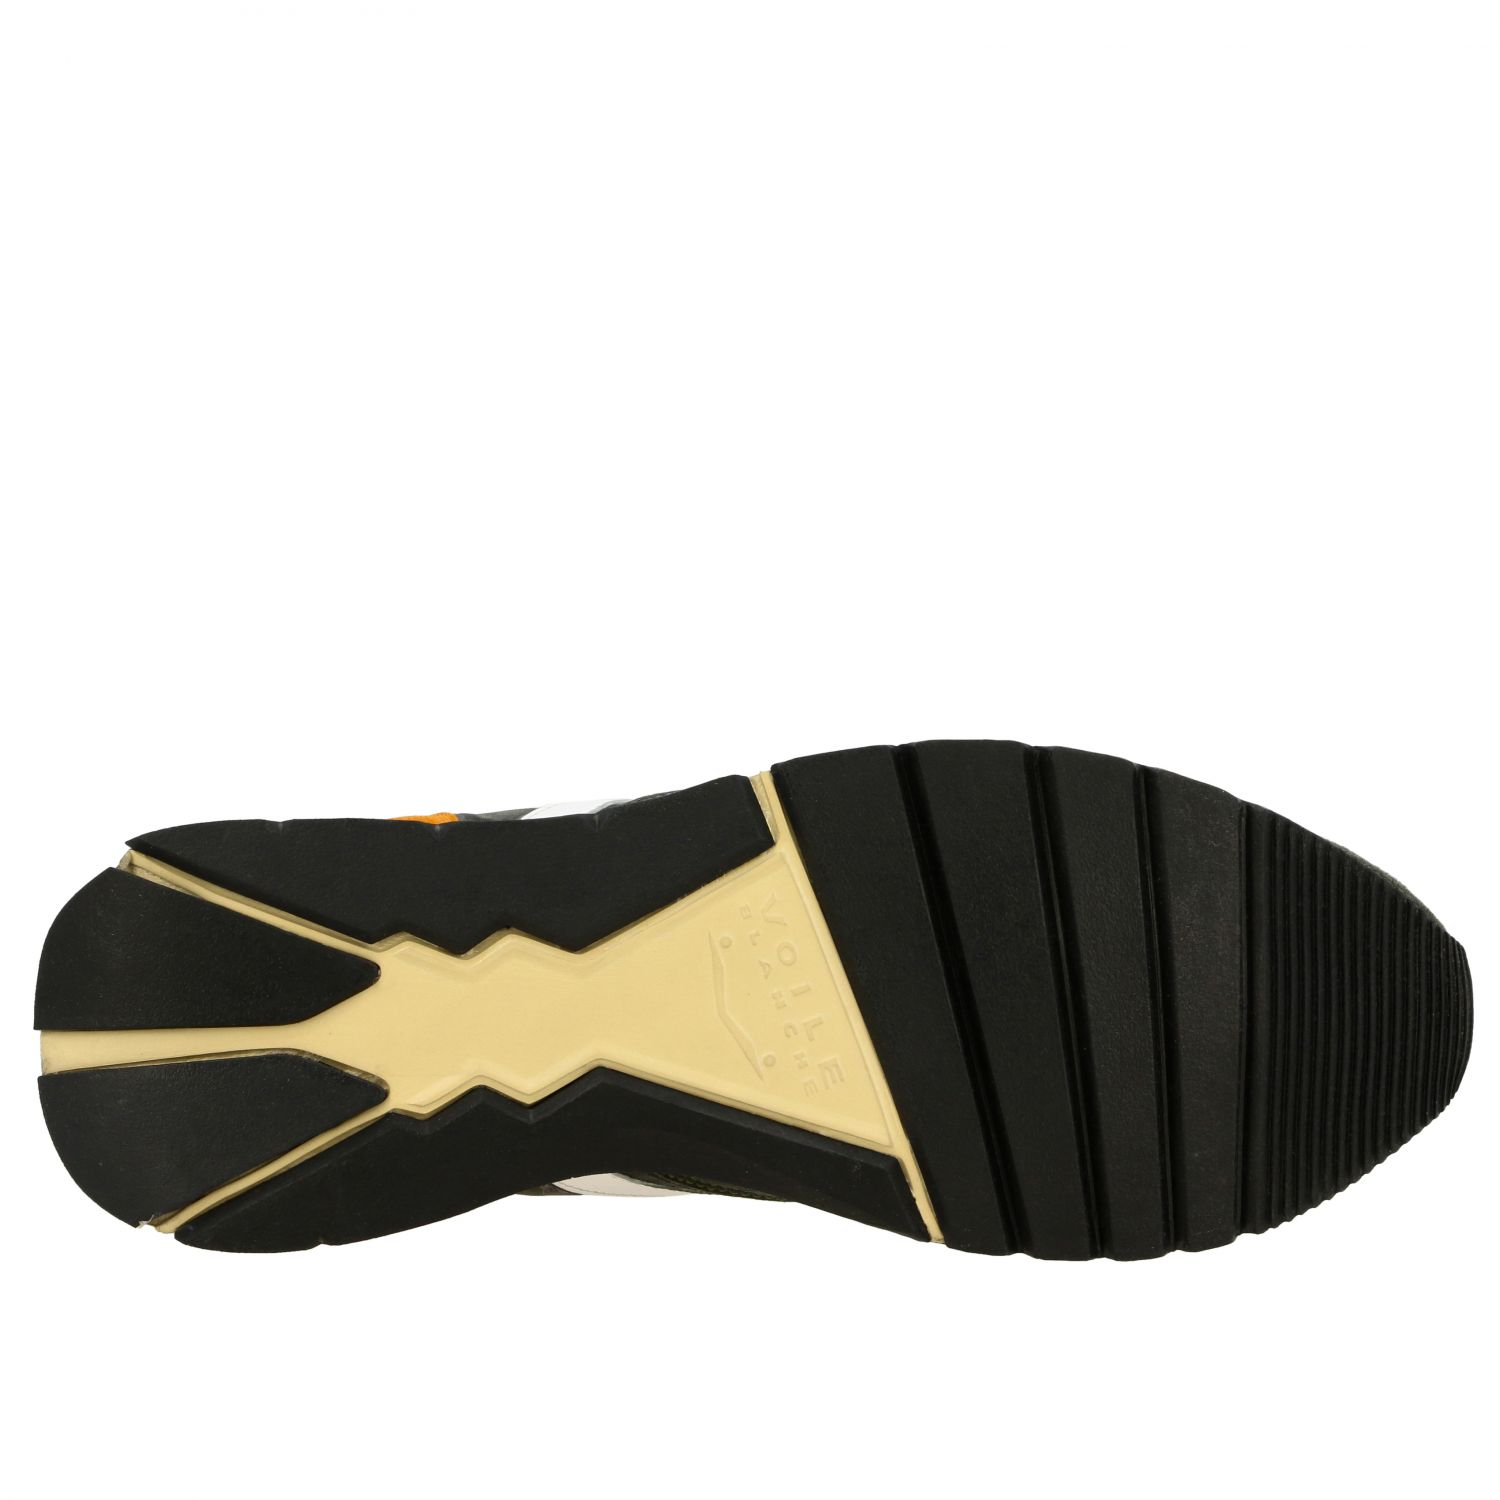 Sneakers men Voile Blanche military 6